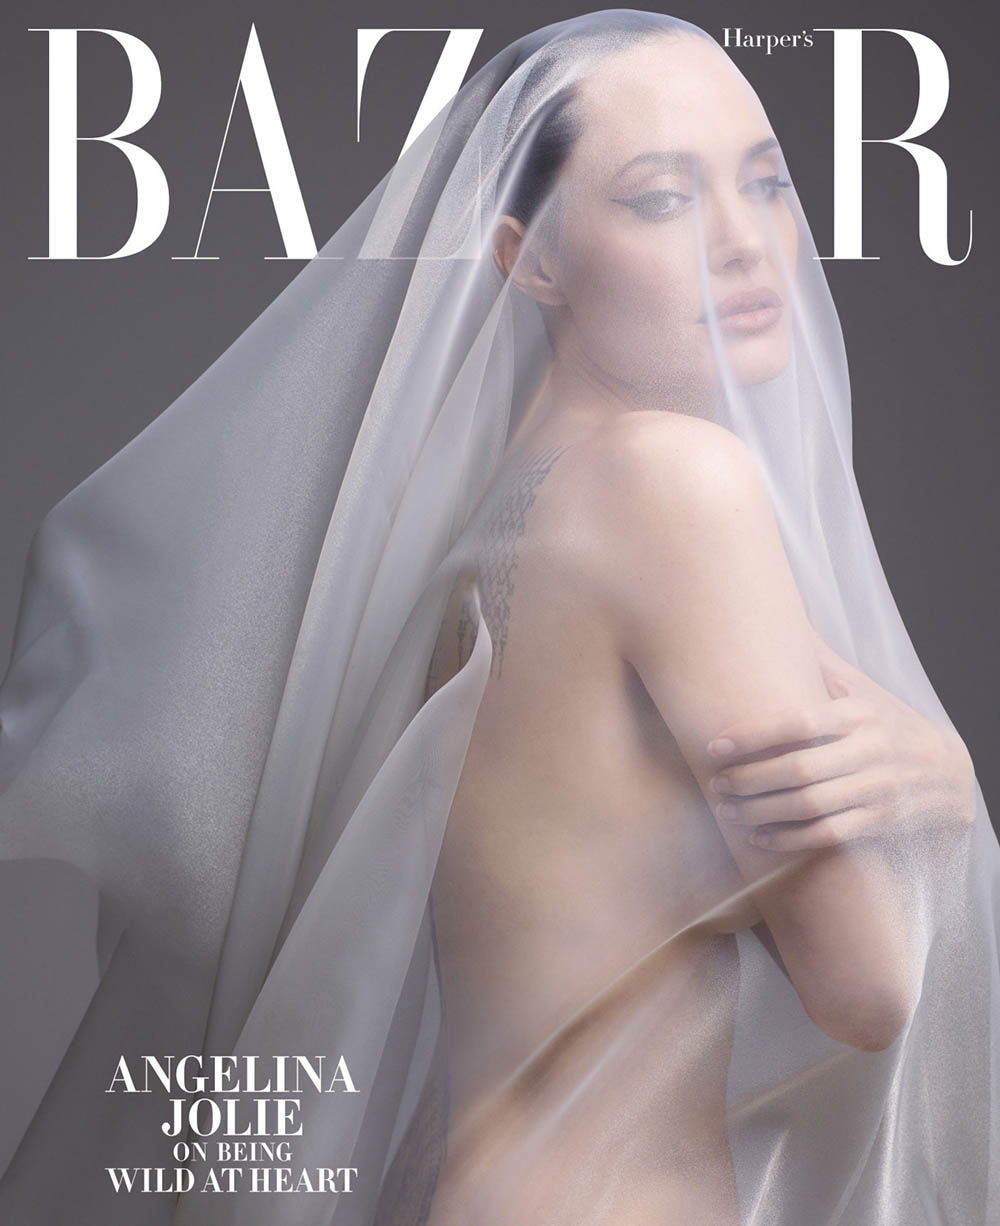 Angelina Jolie covers Harper's Bazaar US December 2019 January 2020 by Sølve Sundsbø